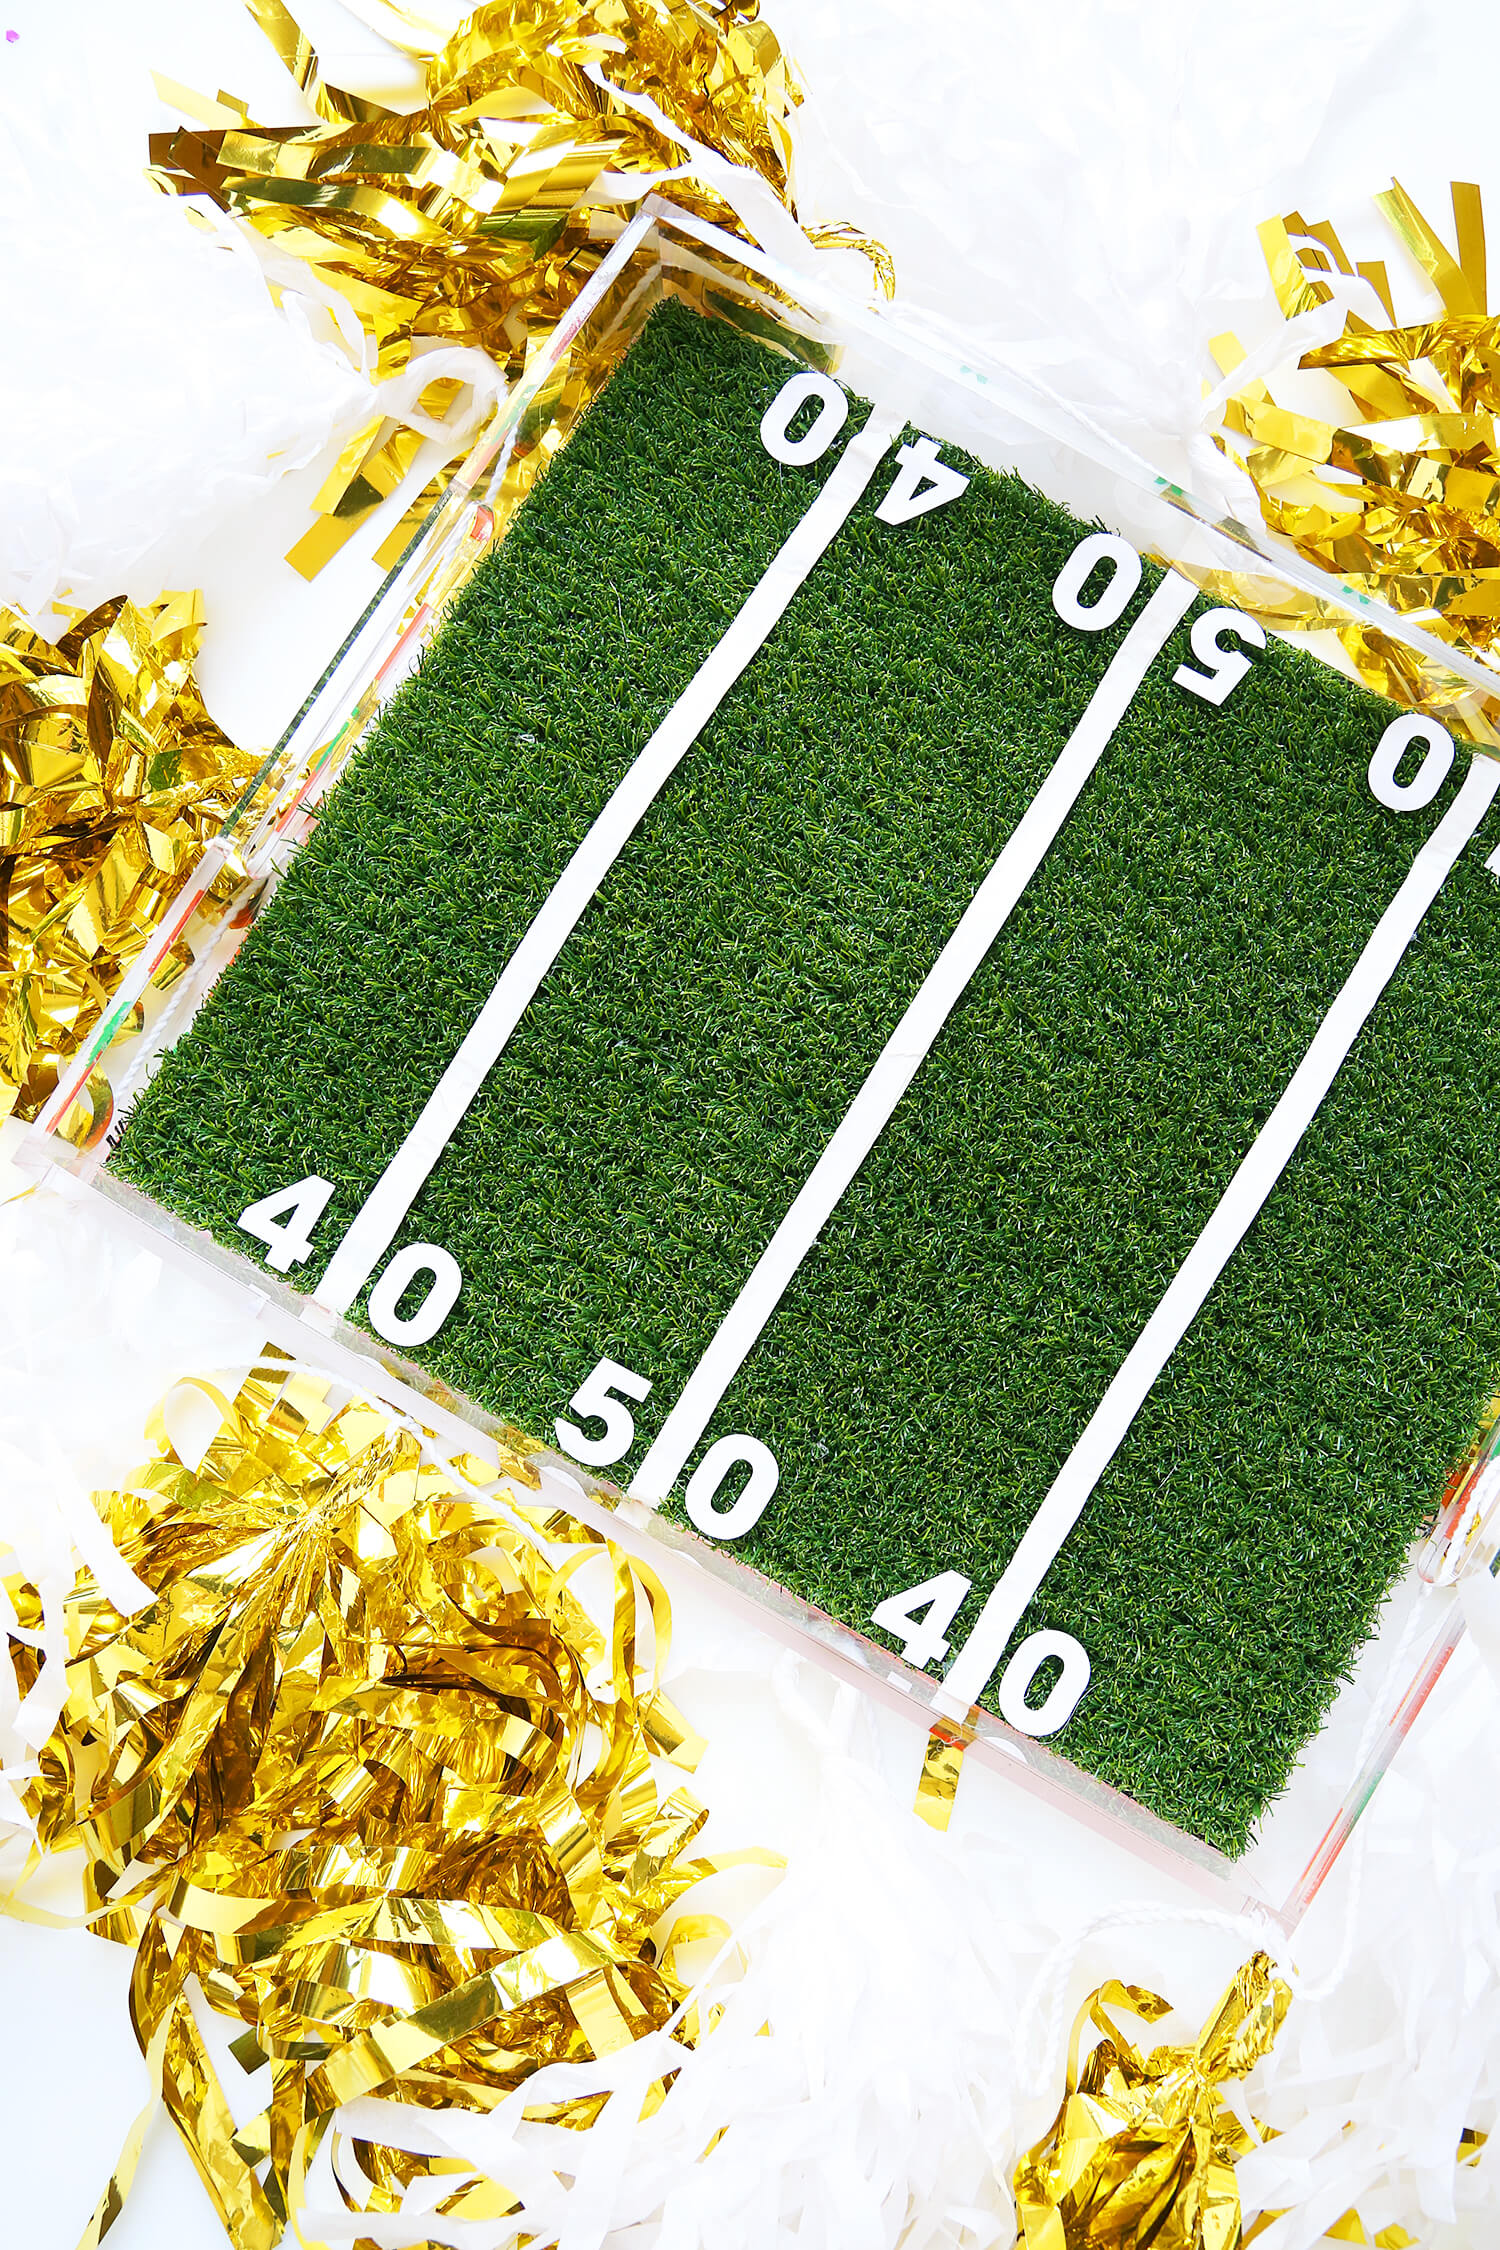 DIY Football Field Tray - Super Bowl Party Ideas